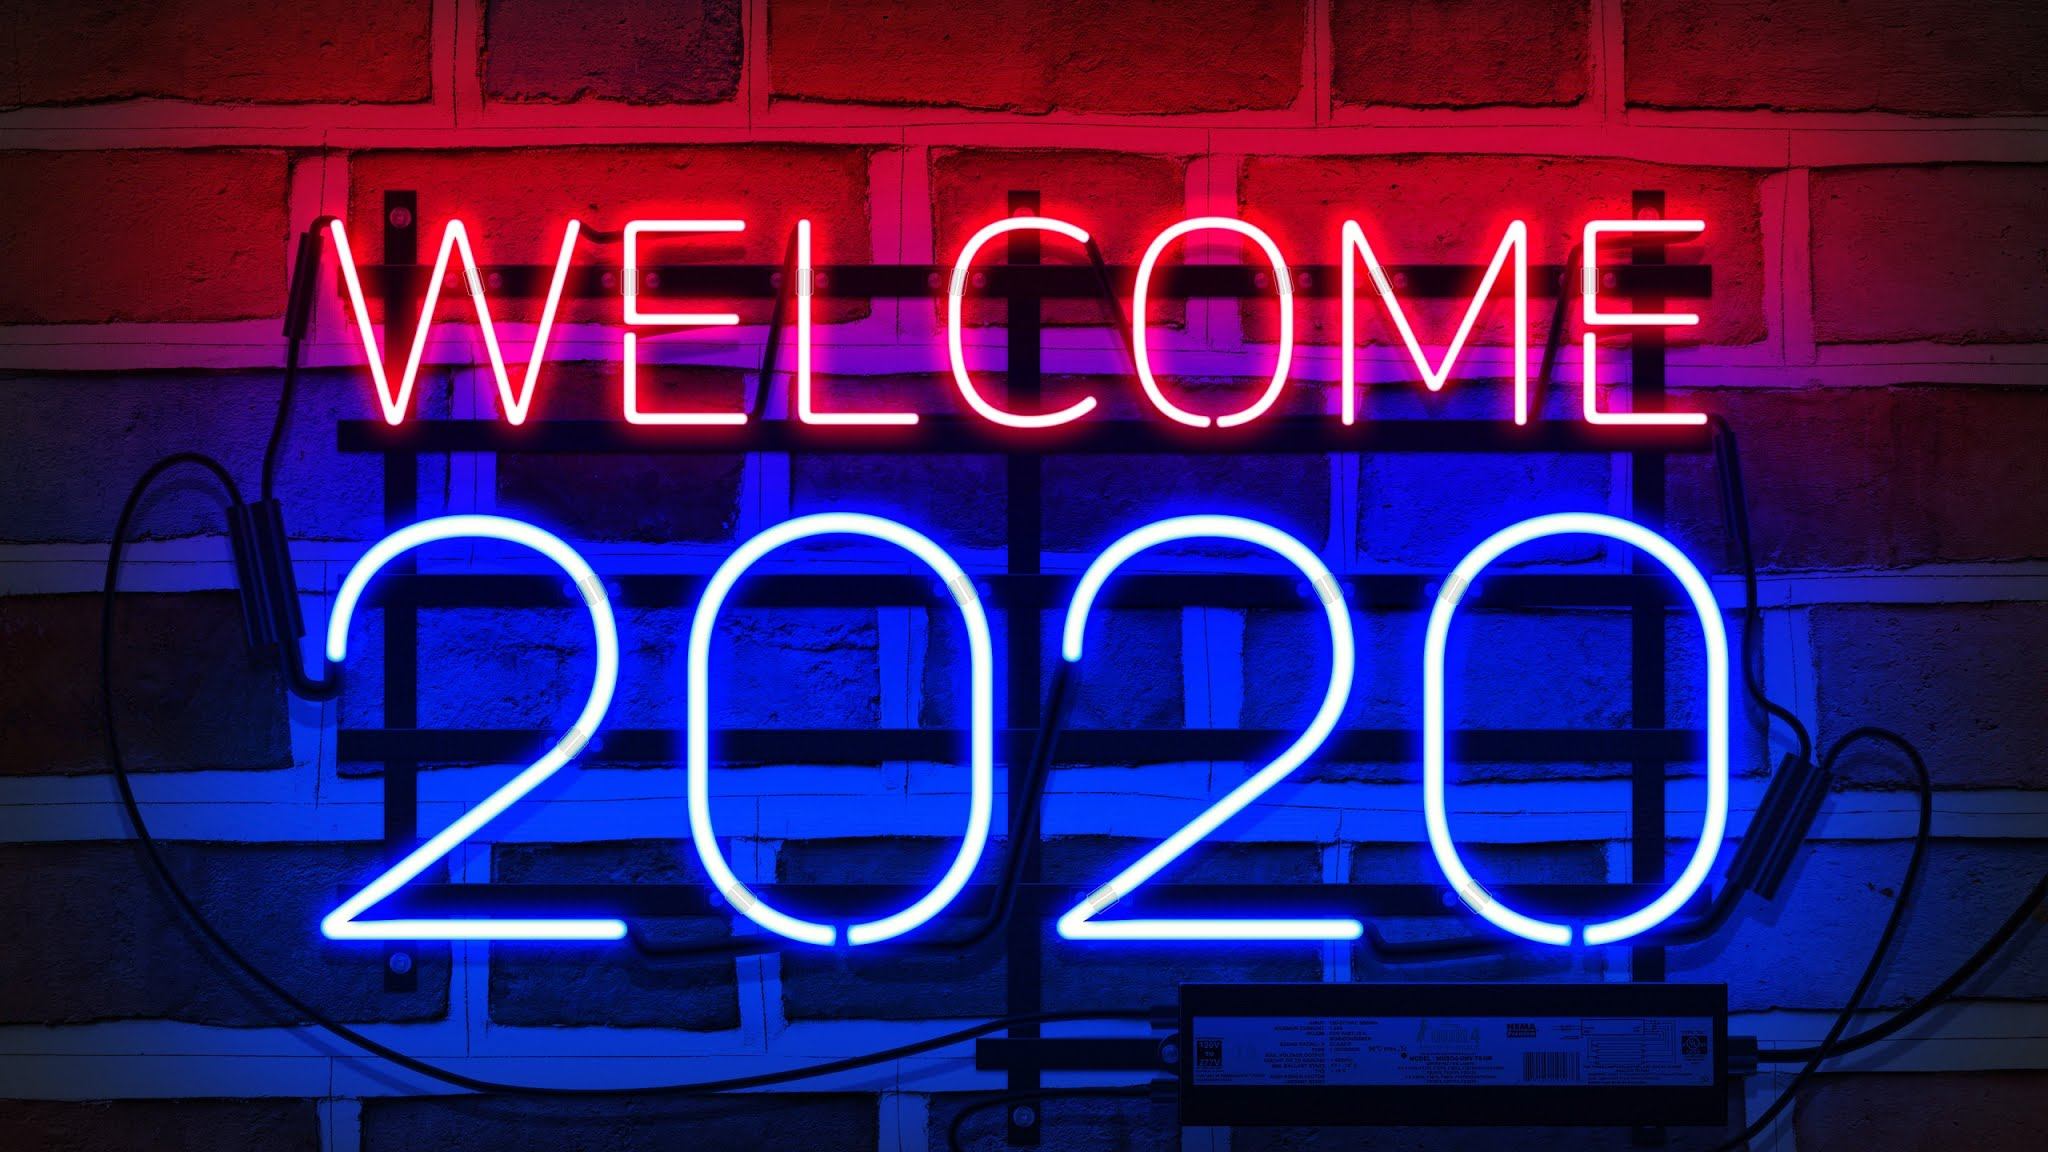 2020 New Year Wallpaper 2048x1152